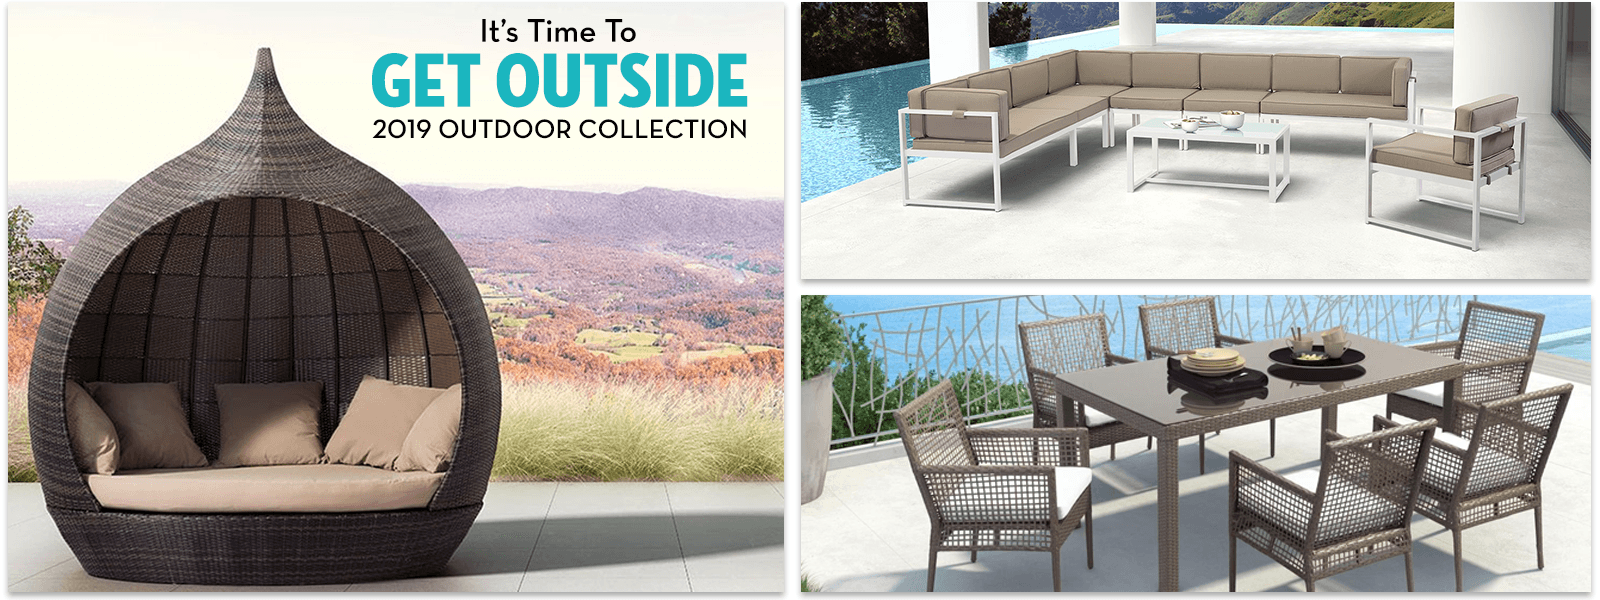 2019 Outdoor Collection